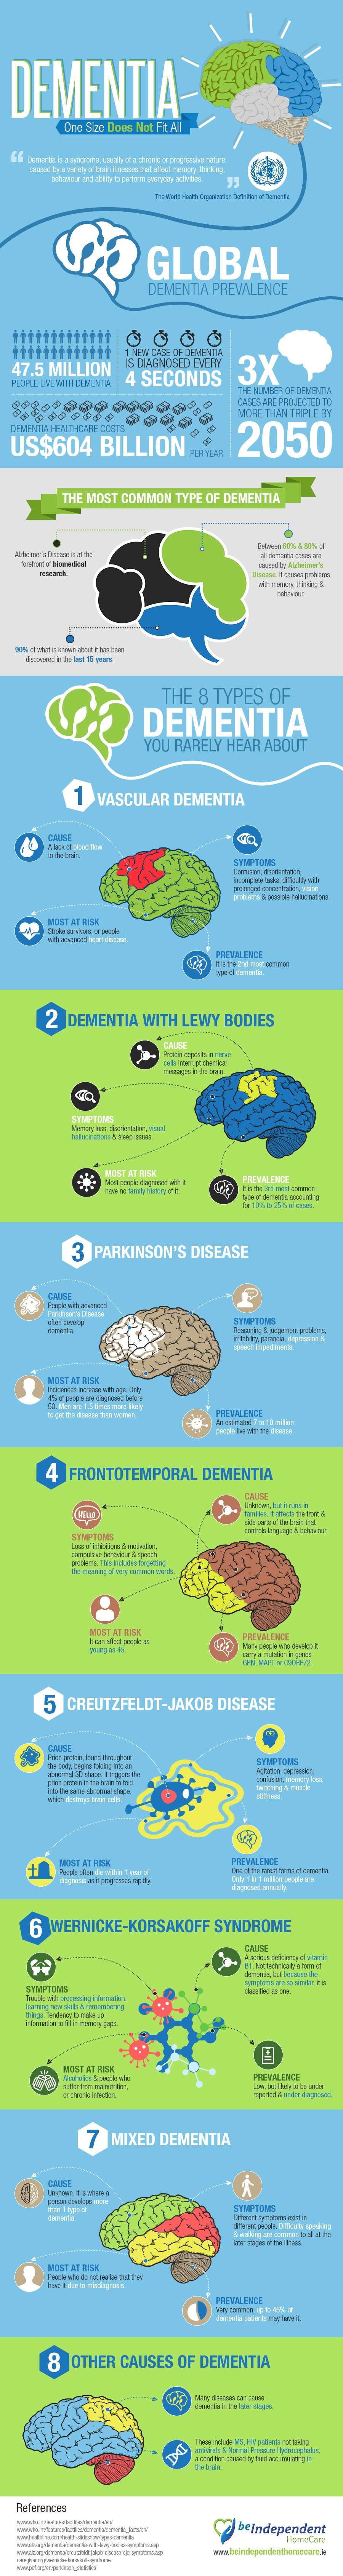 types of dementia in adults